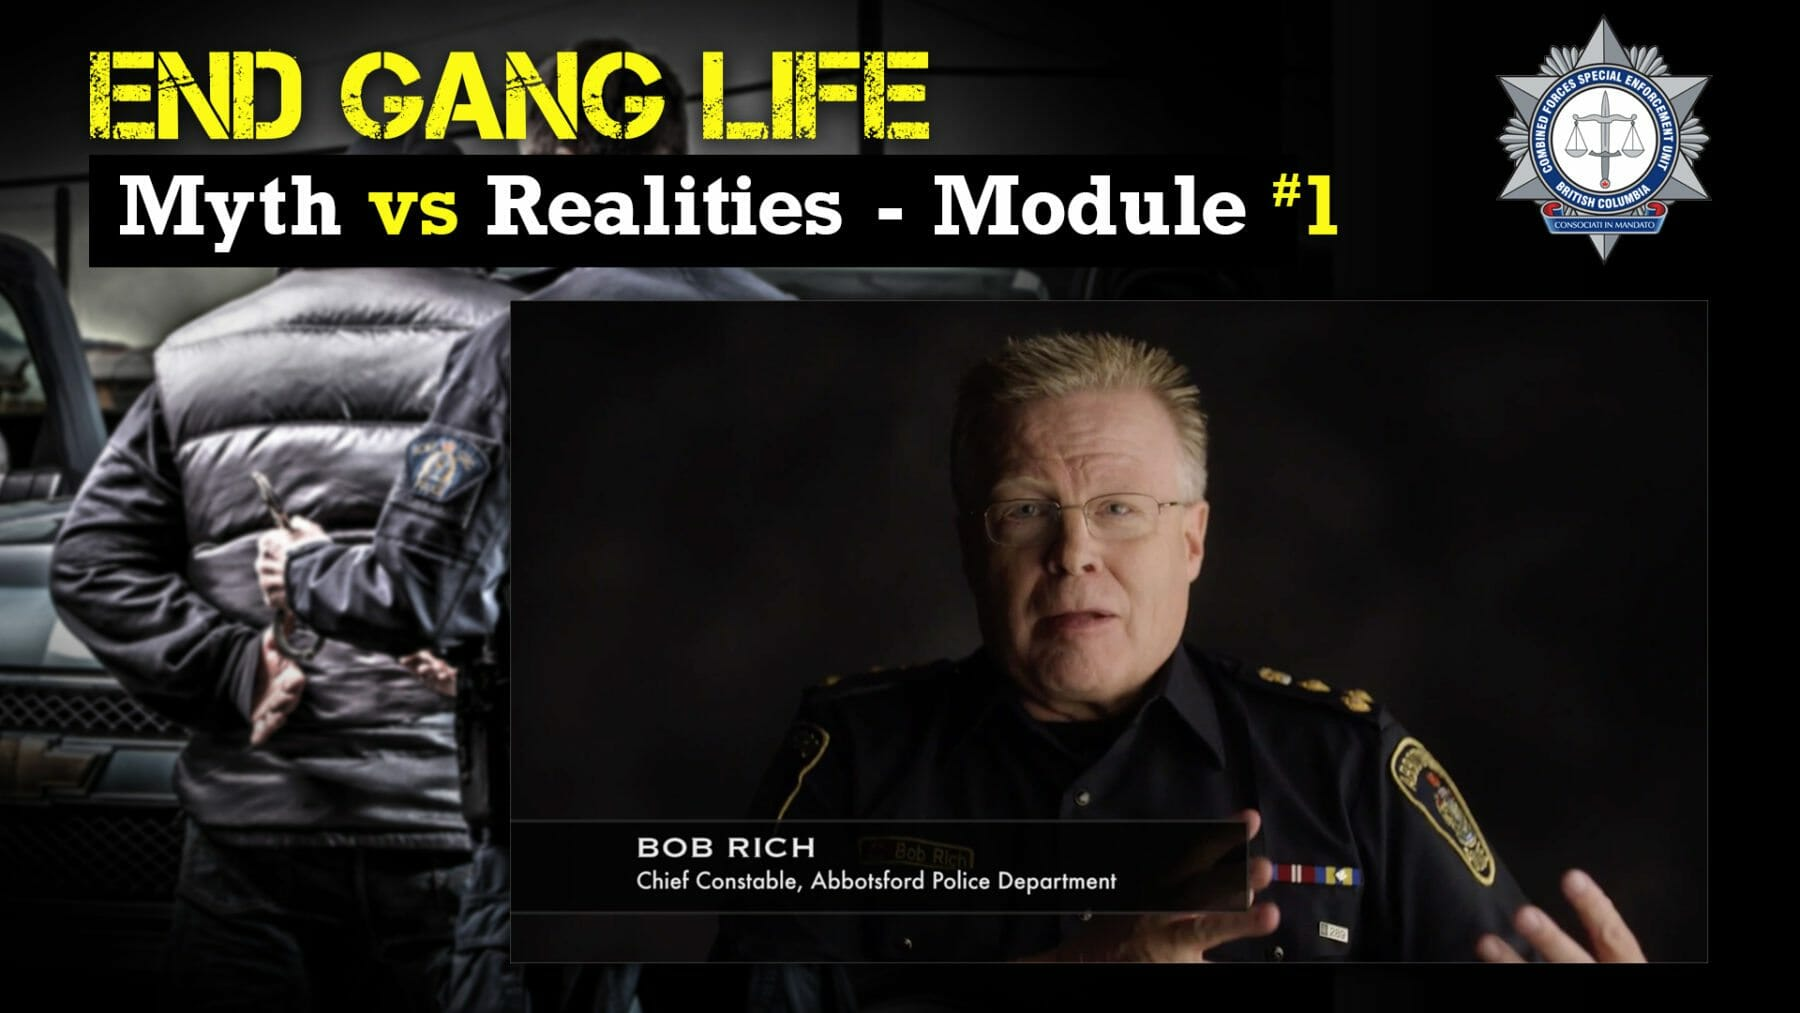 MYTHS AND REALITIES OF GANG LIFE | The Combined Forces